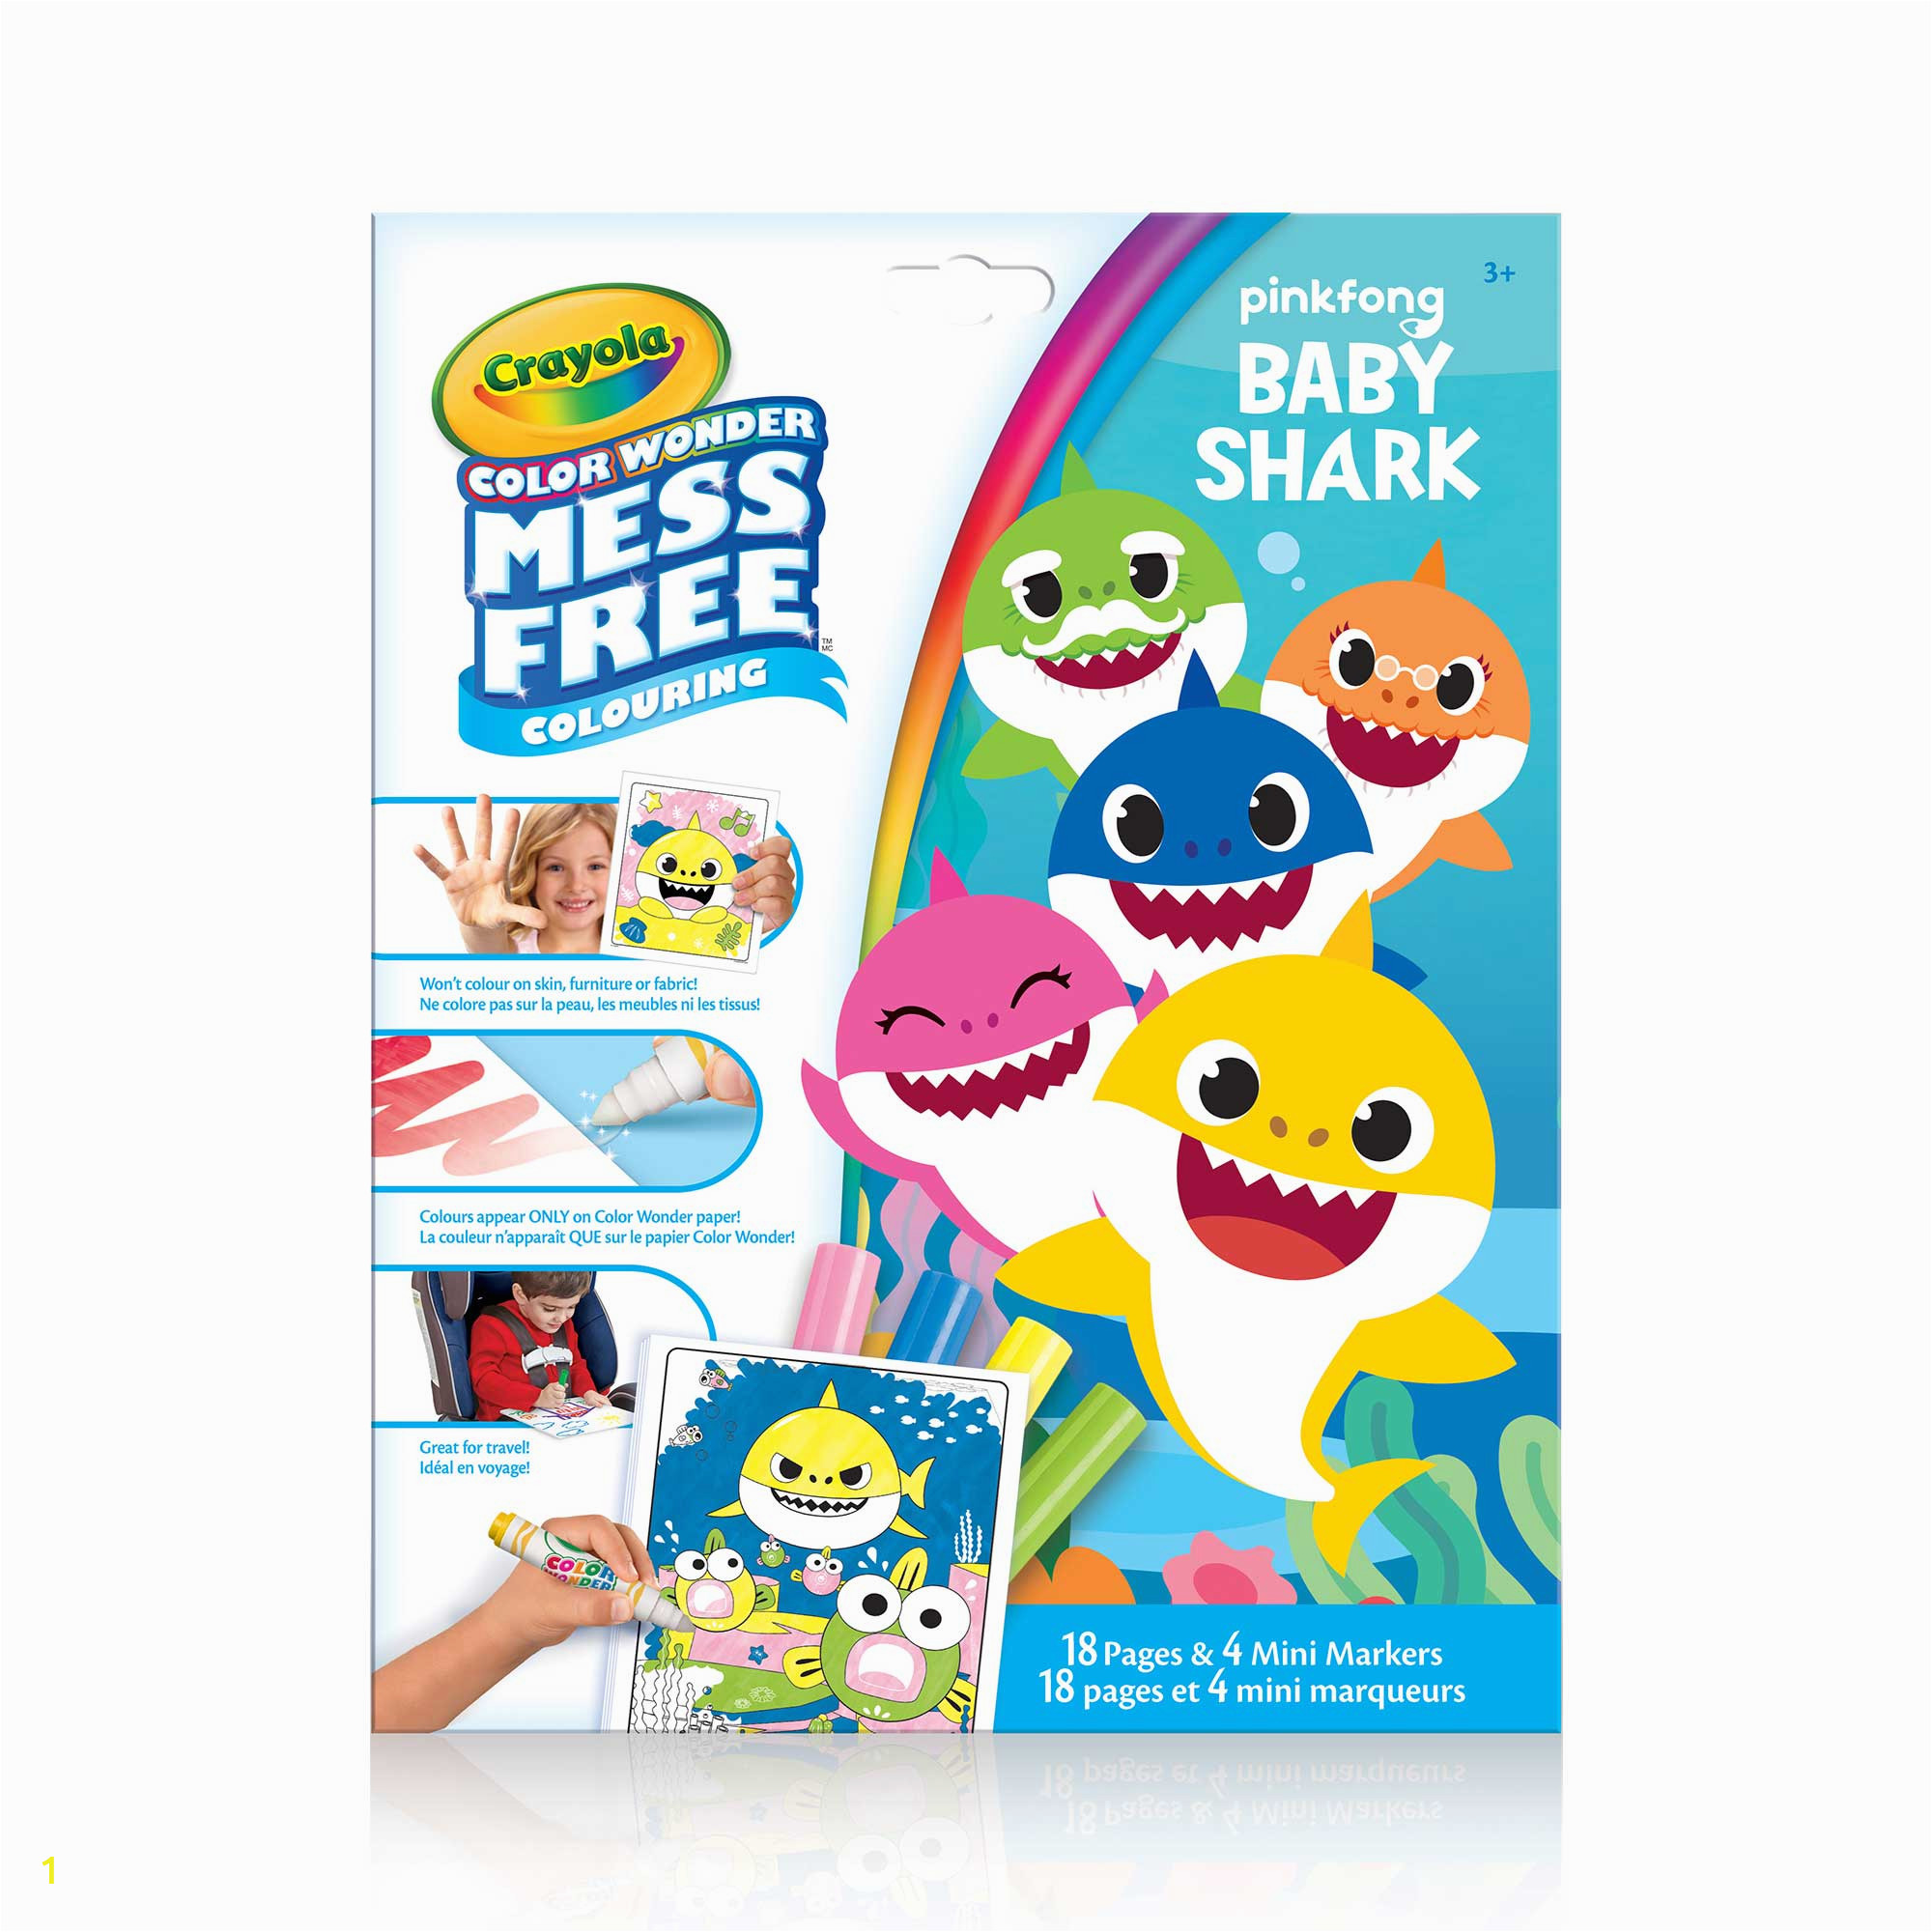 crayola mess free color wonder pages mini markers baby shark